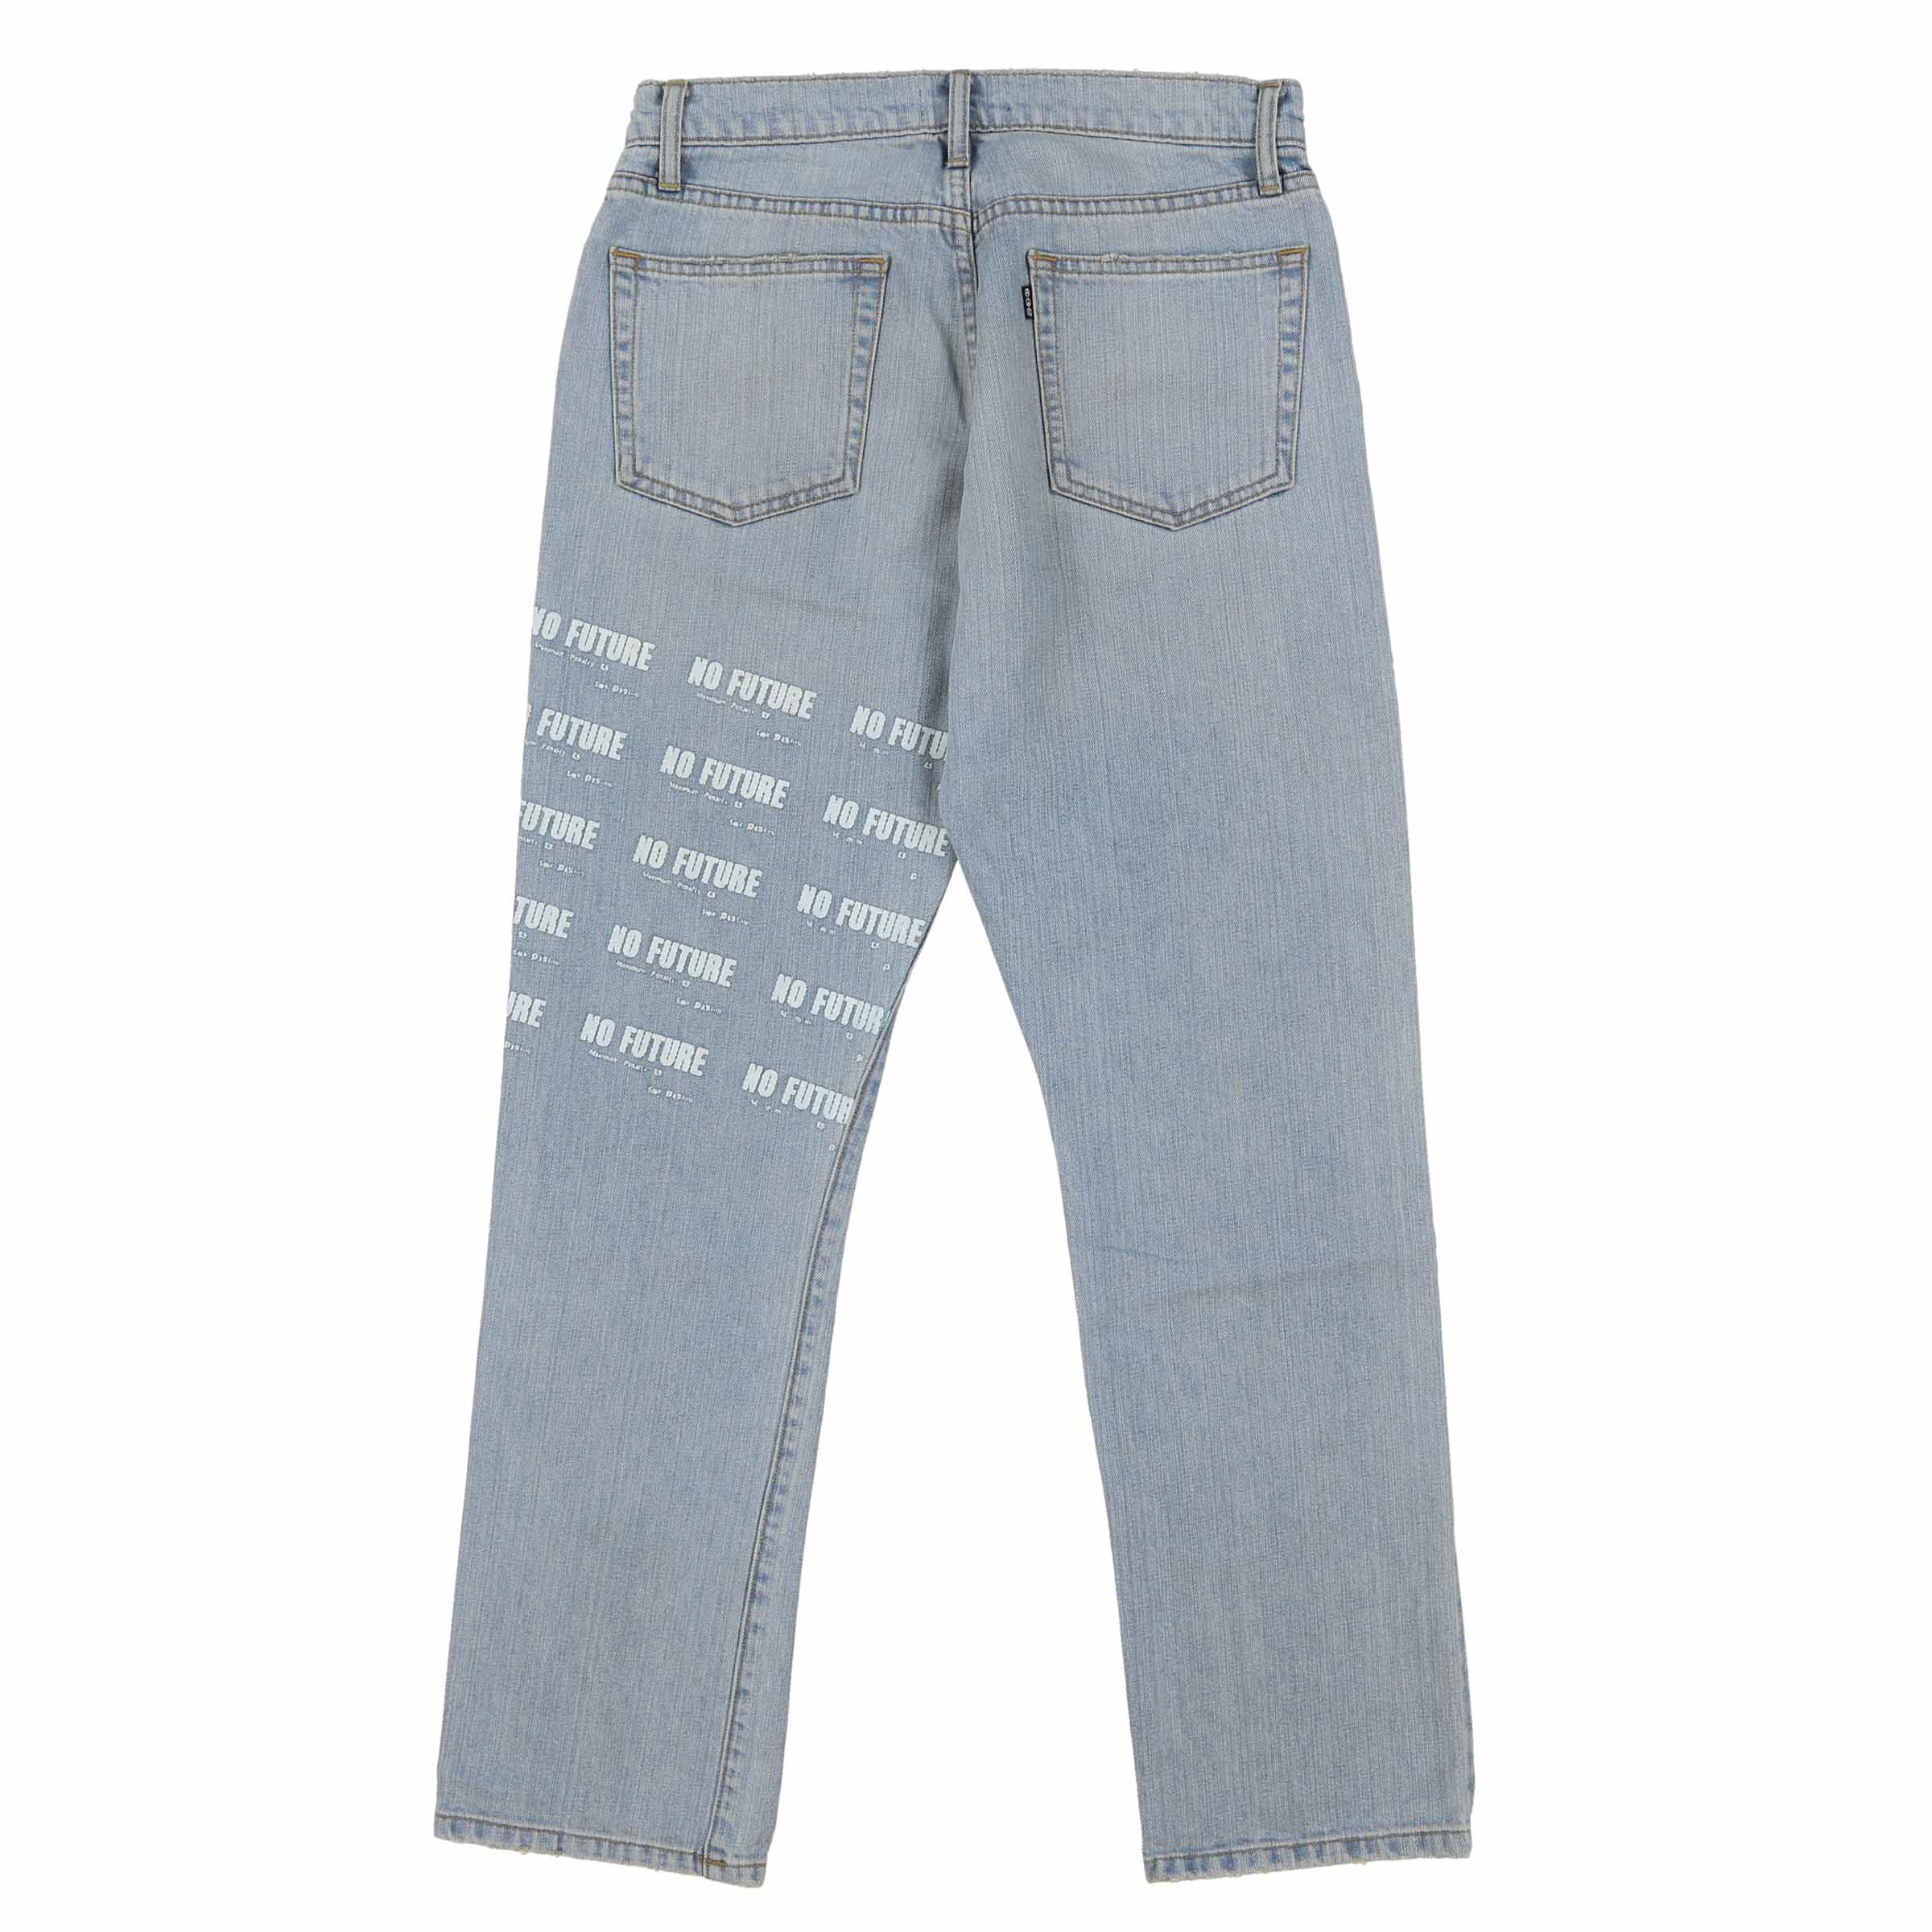 NO FUTURE 5PKT DENIM JEAN